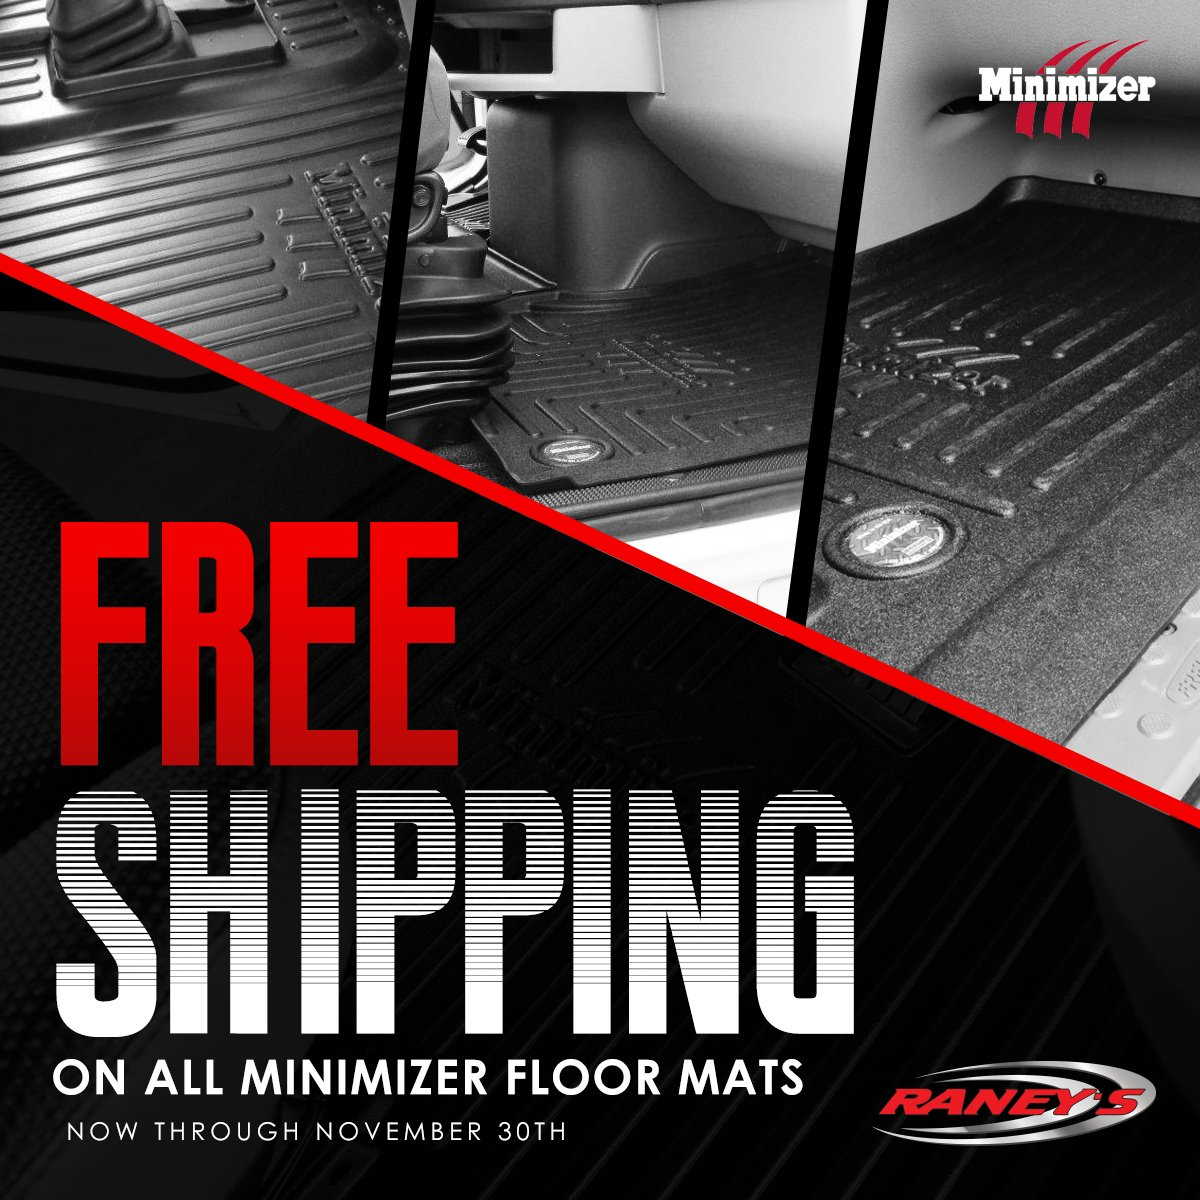 mat electric part mats engine w star truck western driver westernstar tray side product floor s minimizer semi